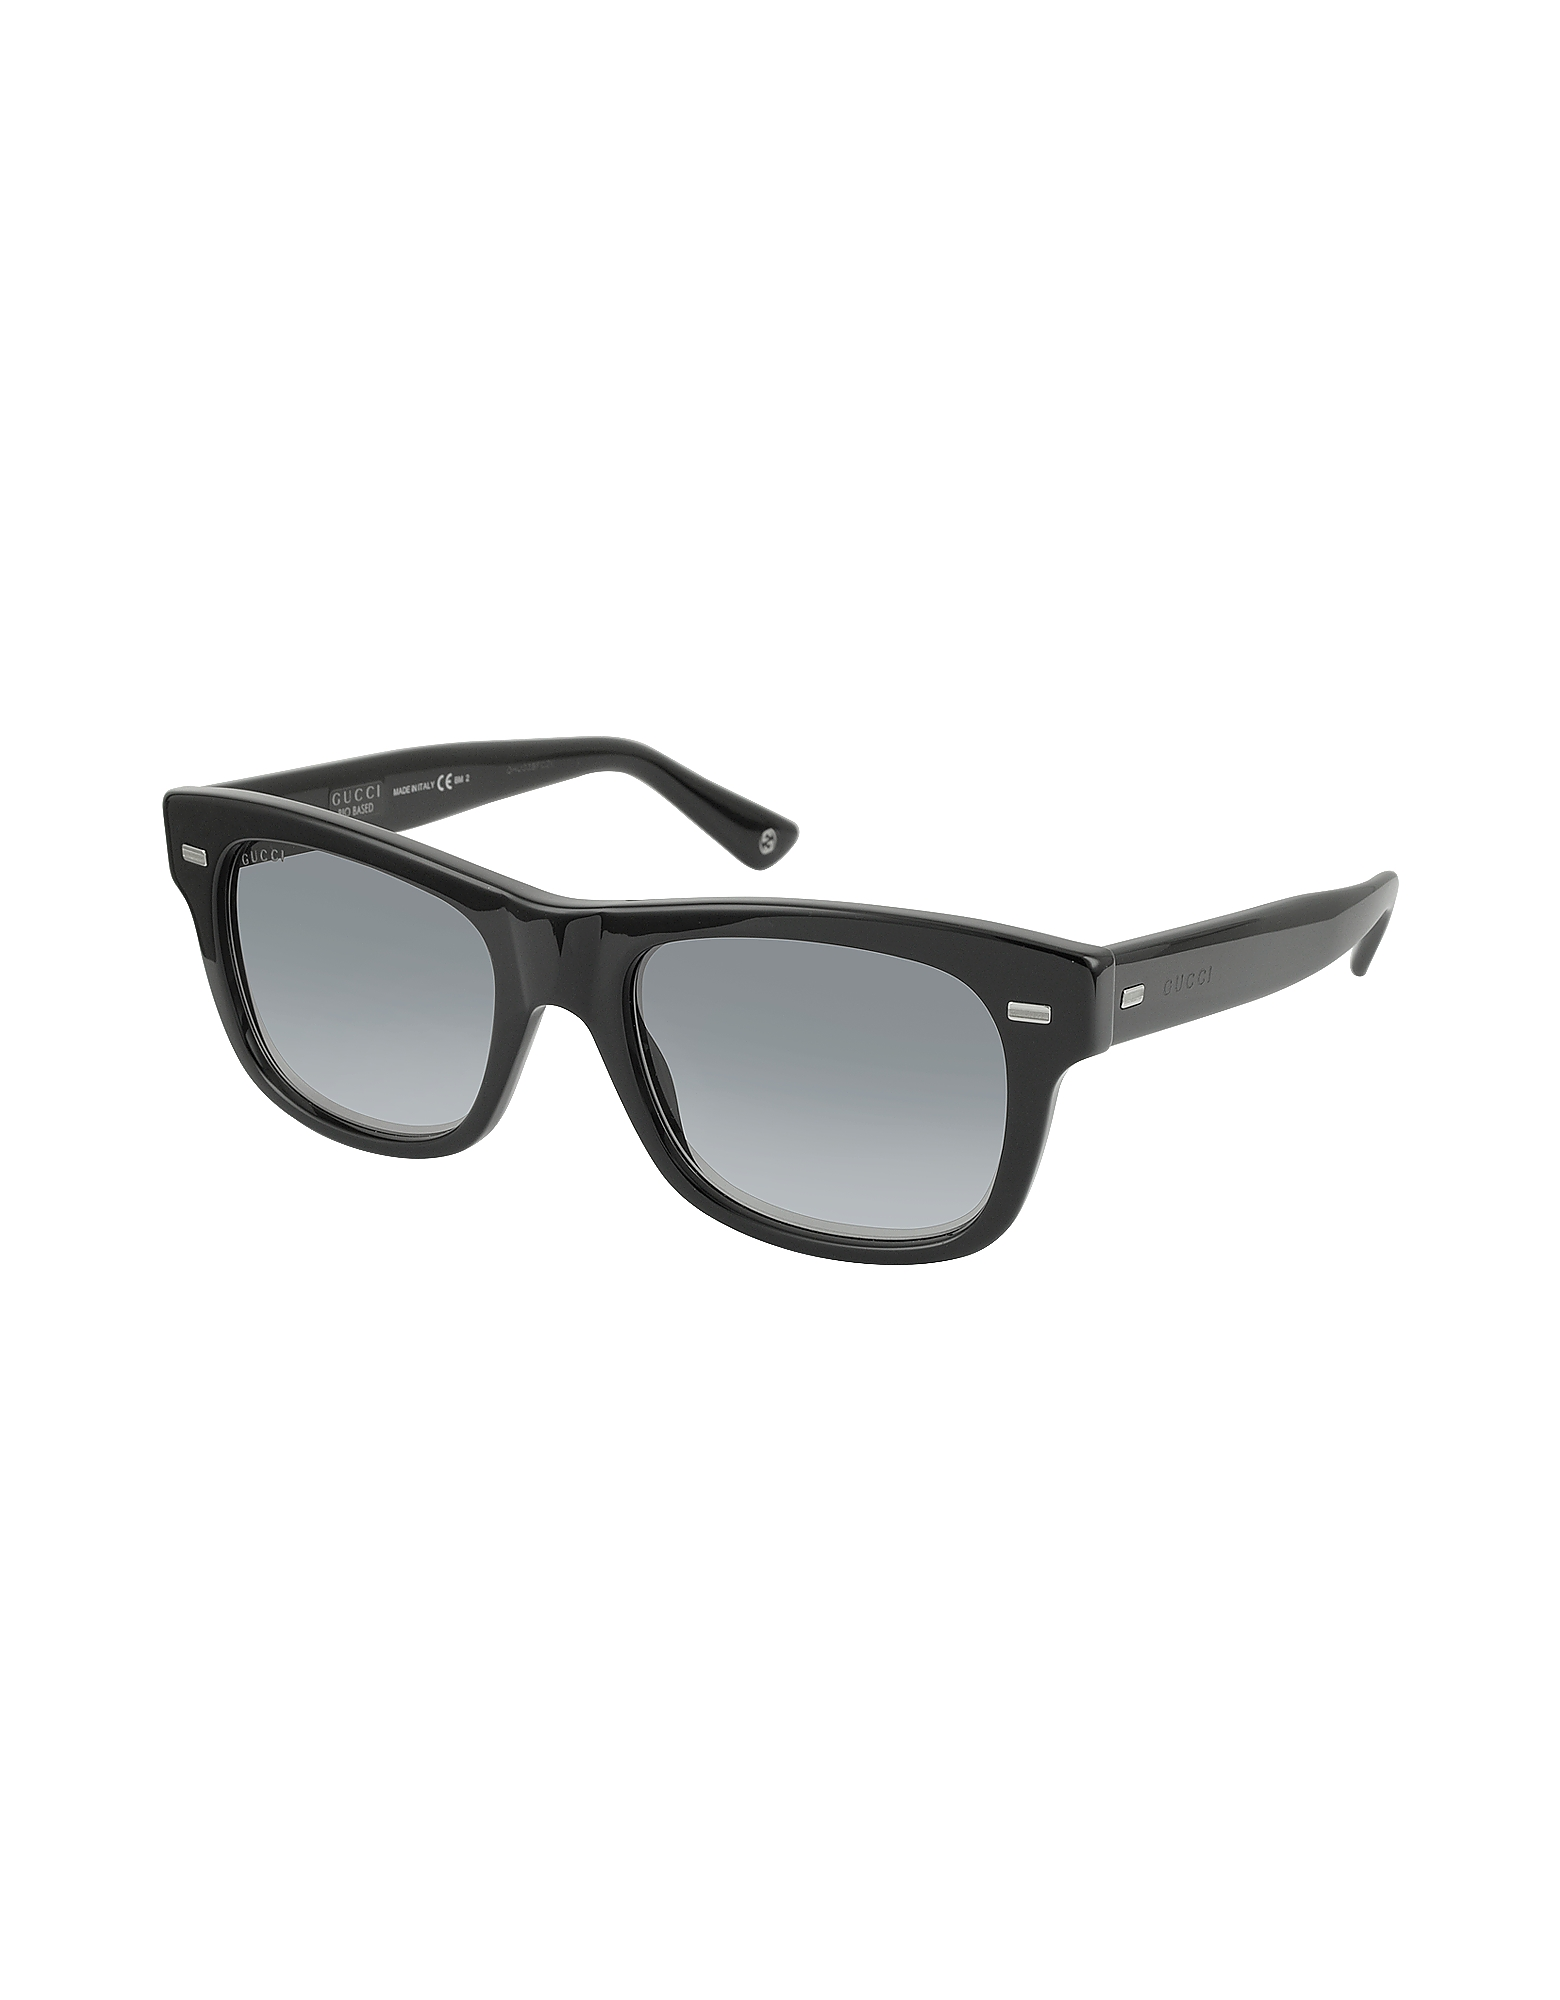 GG 1078/S 4UAVK Shiny Black Acetate Square Frame Sunglasses от Forzieri.com INT